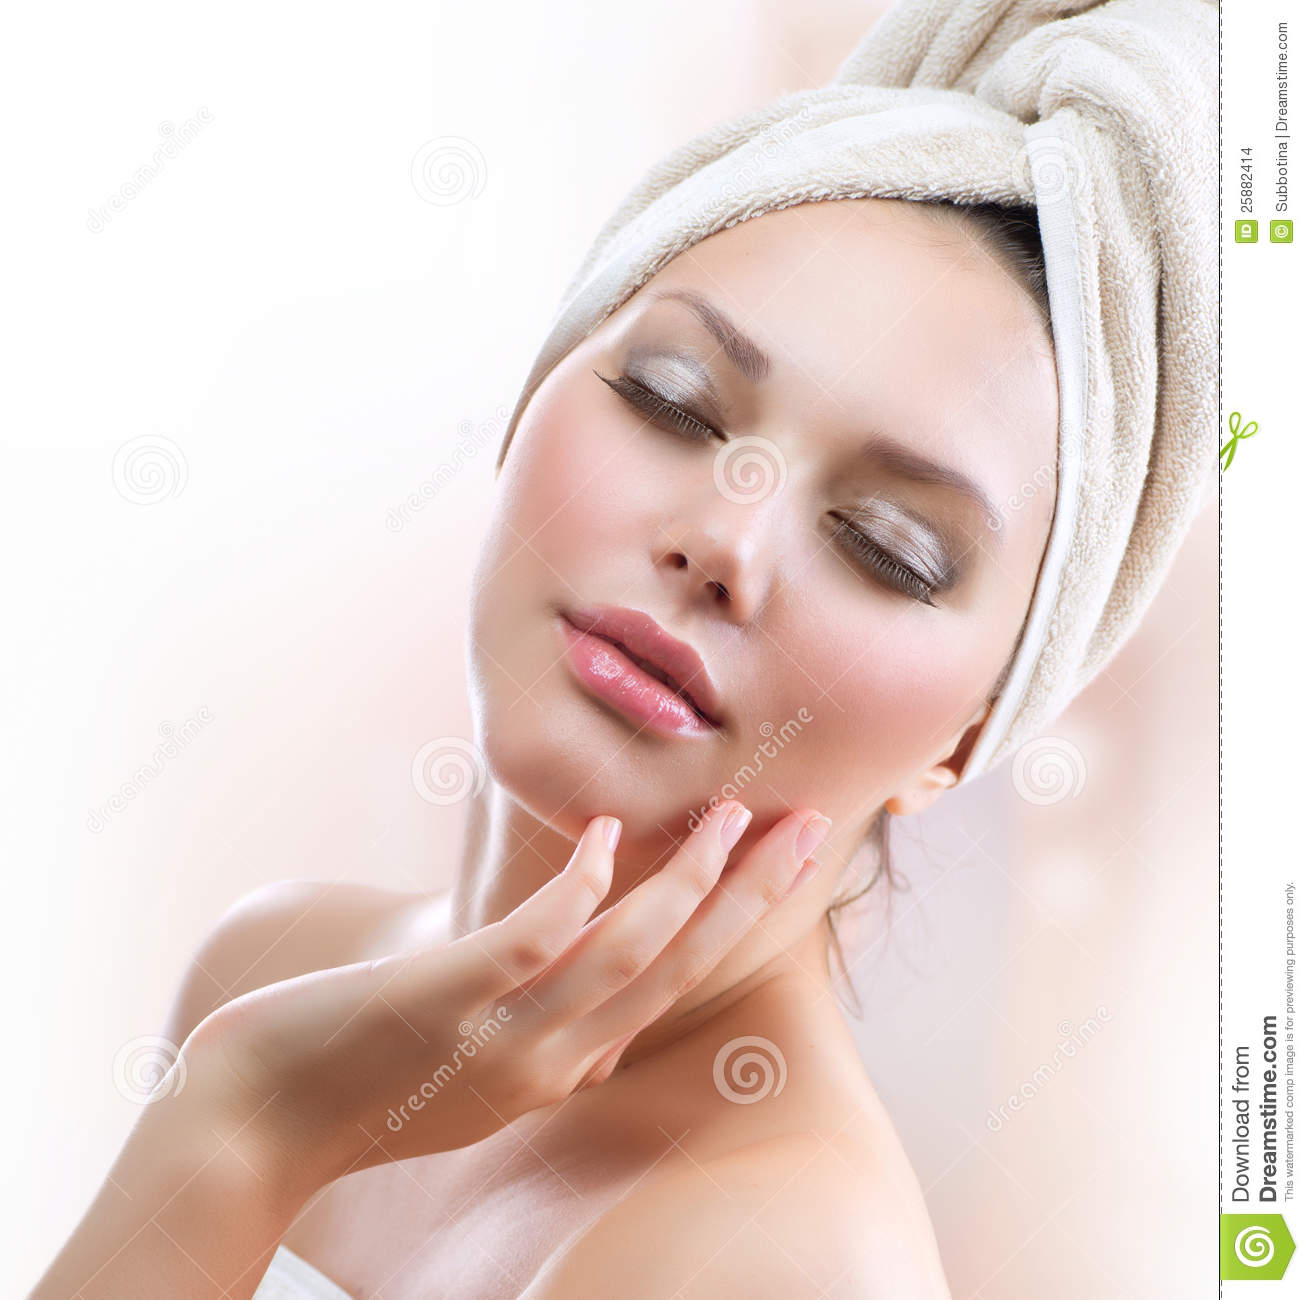 Fille de station thermale. Skincare